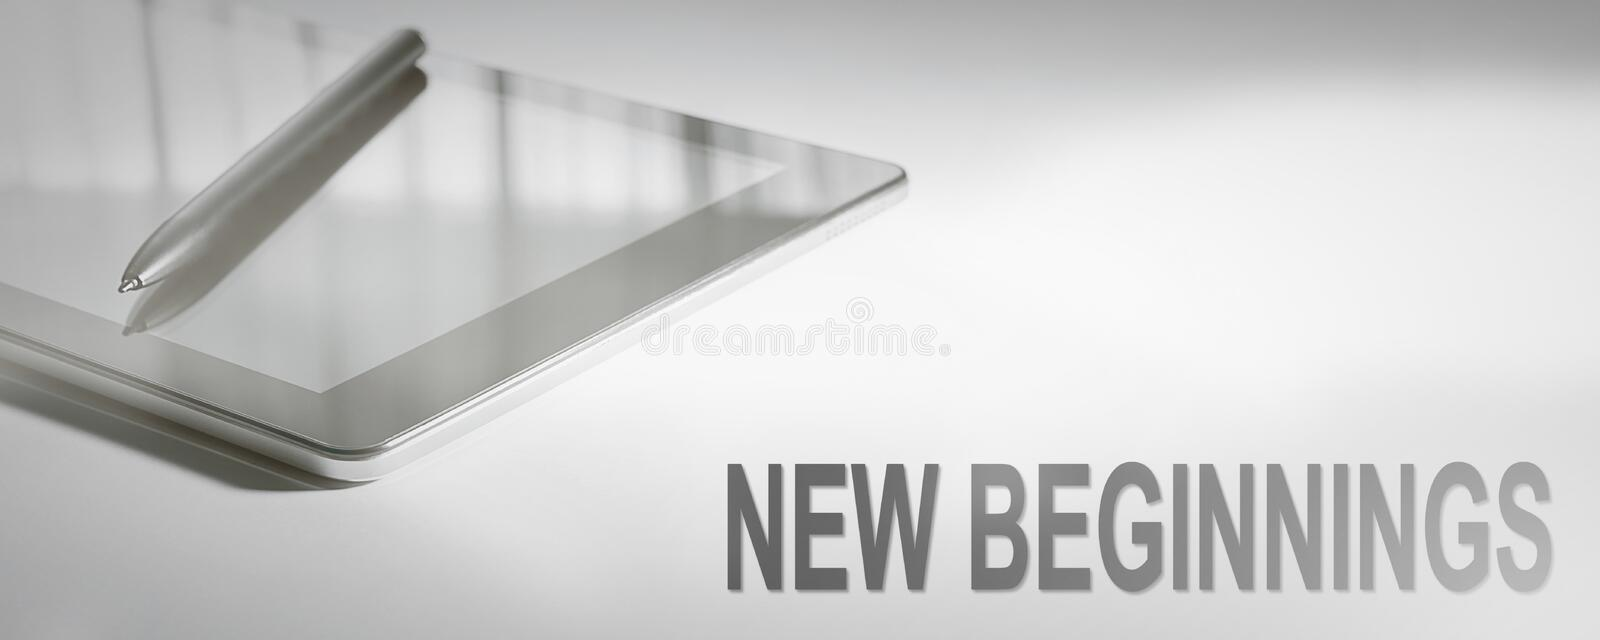 NEW BEGINNINGS Business Concept Digital Technology. Graphic Concept. royalty free stock photography